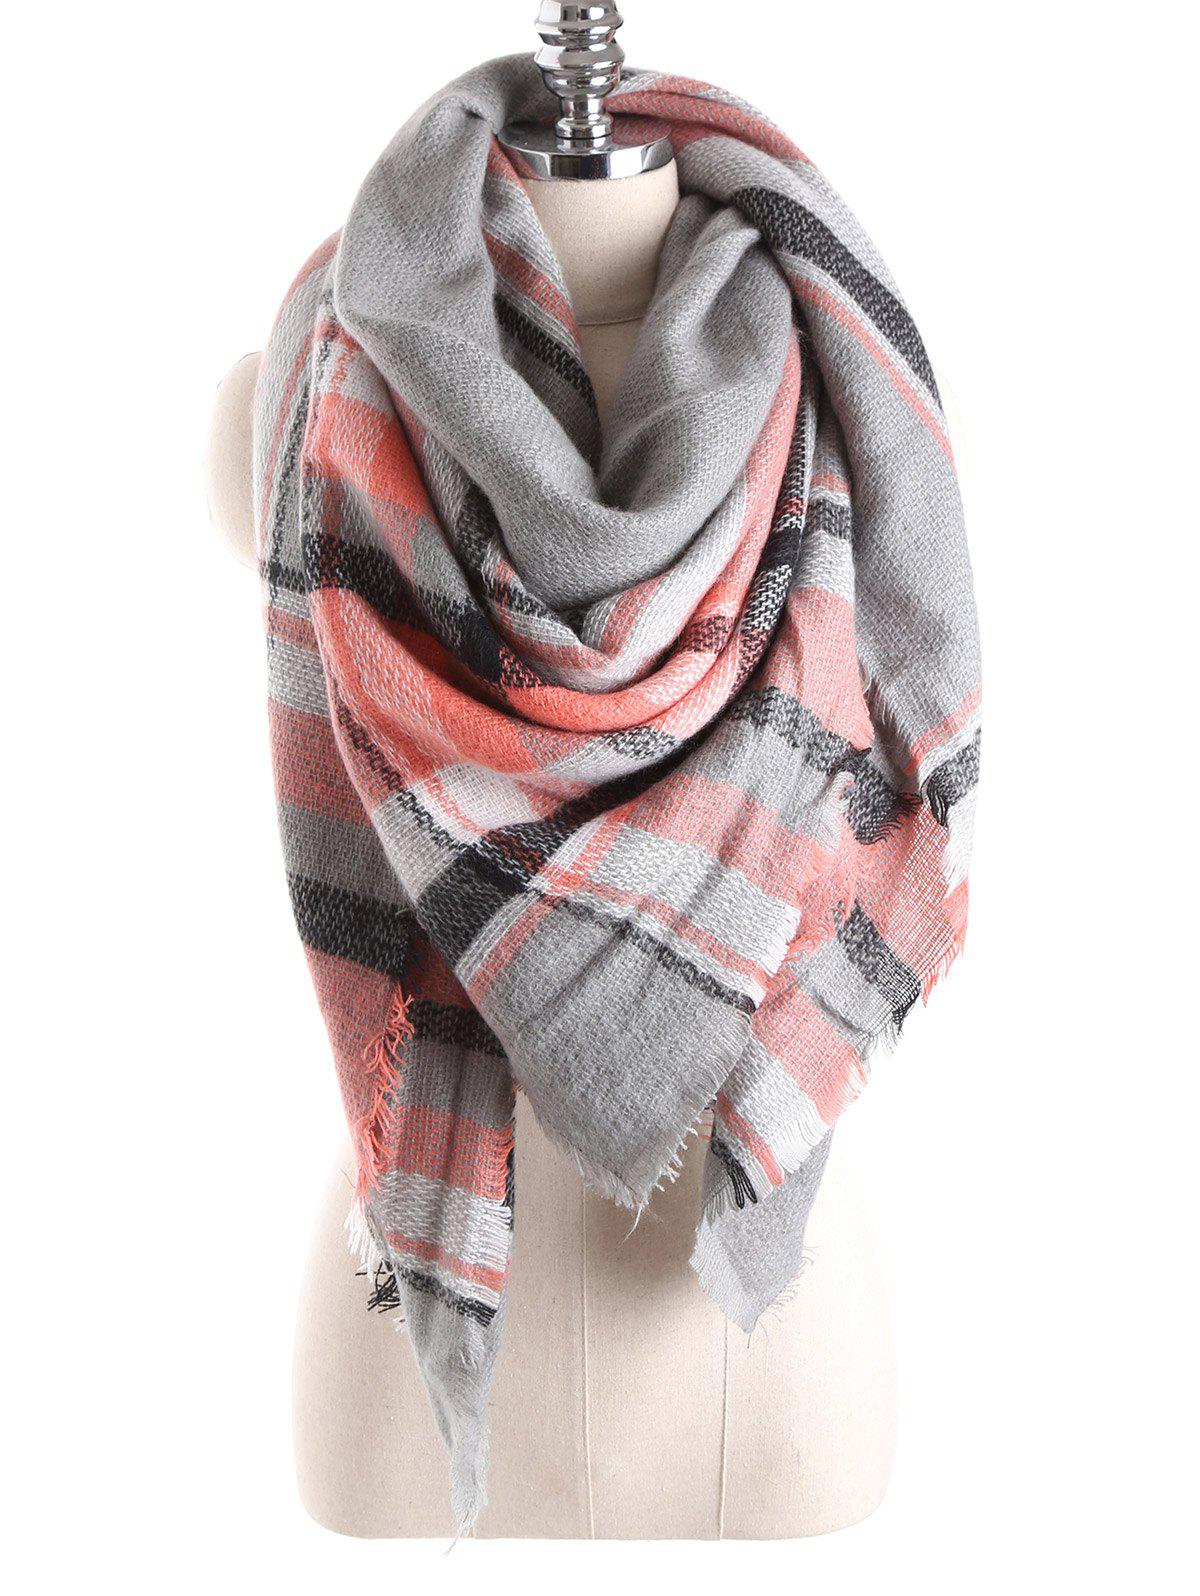 Warm Tartan Plaid Blanket Shawl ScarfACCESSORIES<br><br>Color: GRAY; Scarf Type: Scarf; Group: Adult; Gender: For Women; Style: Fashion; Material: Acrylic; Season: Fall,Winter; Scarf Length: 140CM; Scarf Width (CM): 140CM; Weight: 0.270kg; Package Contents: 1 x Scarf;